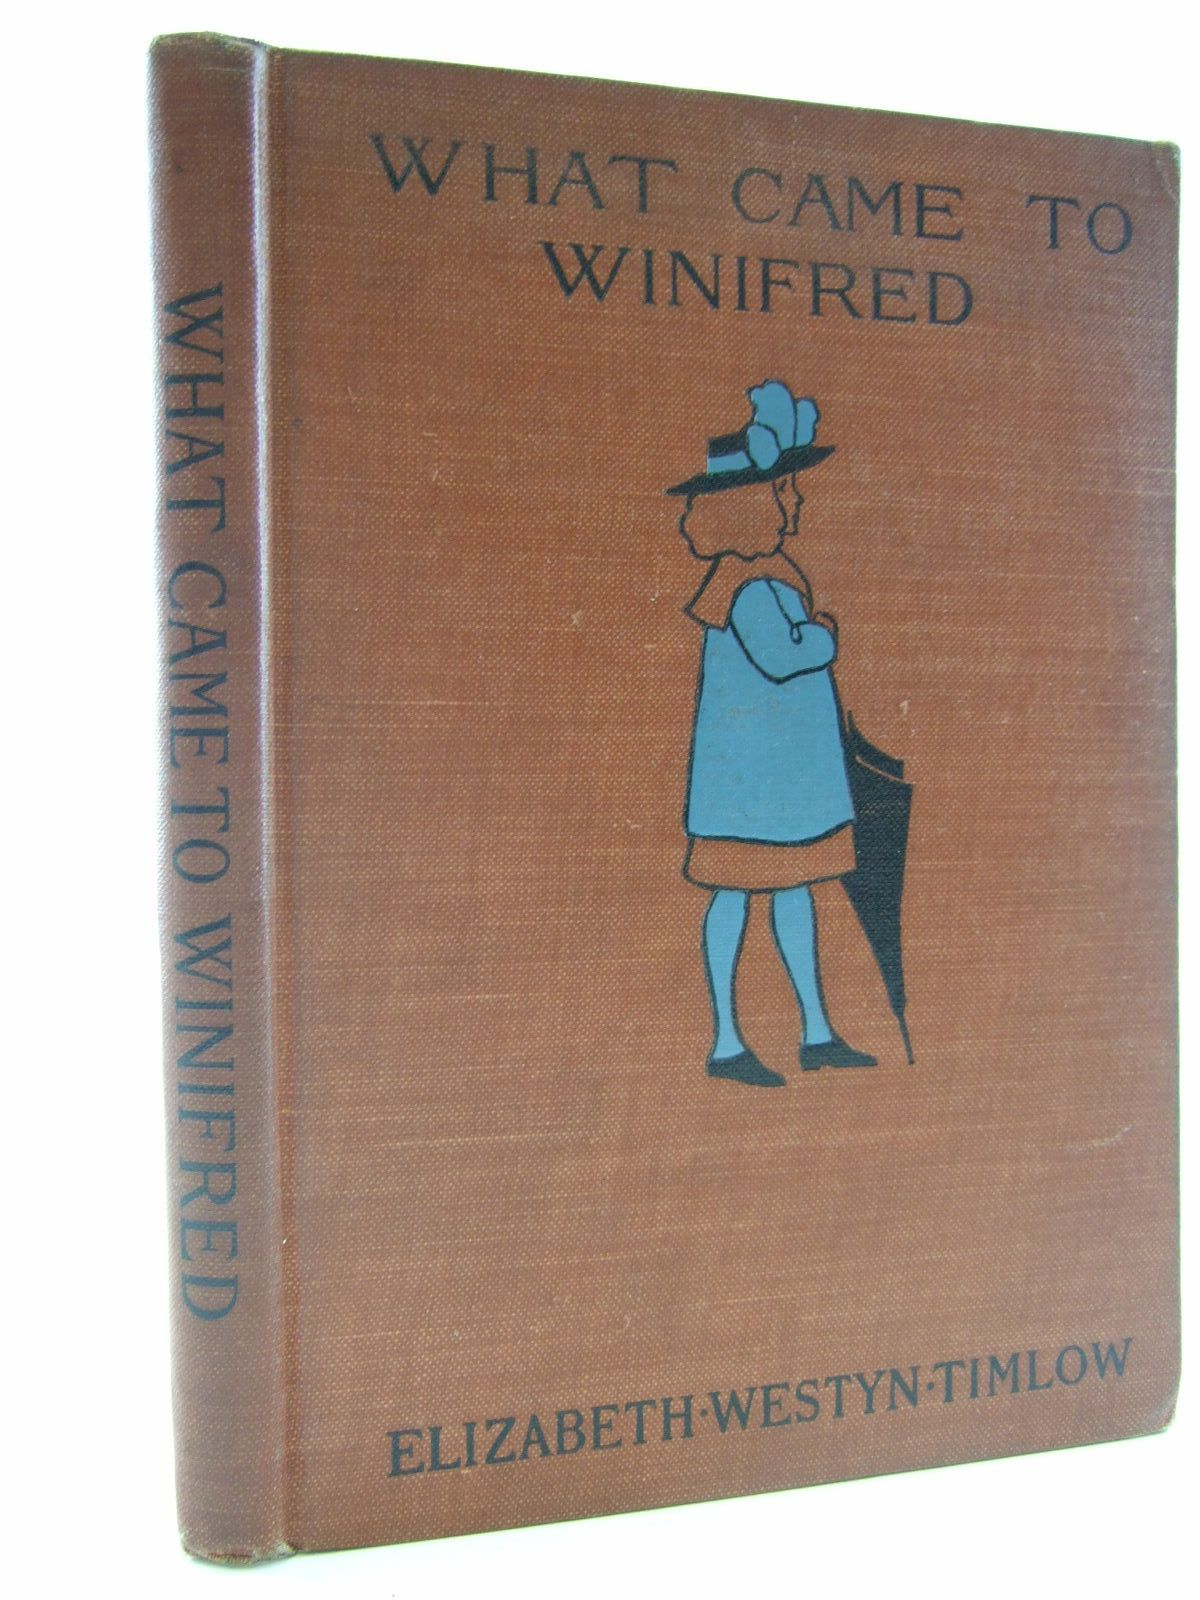 Photo of WHAT CAME TO WINIFRED written by Timlow, Elizabeth Westyn illustrated by Barry, Etheldred B. published by Dana Estes & Company (STOCK CODE: 1107800)  for sale by Stella & Rose's Books